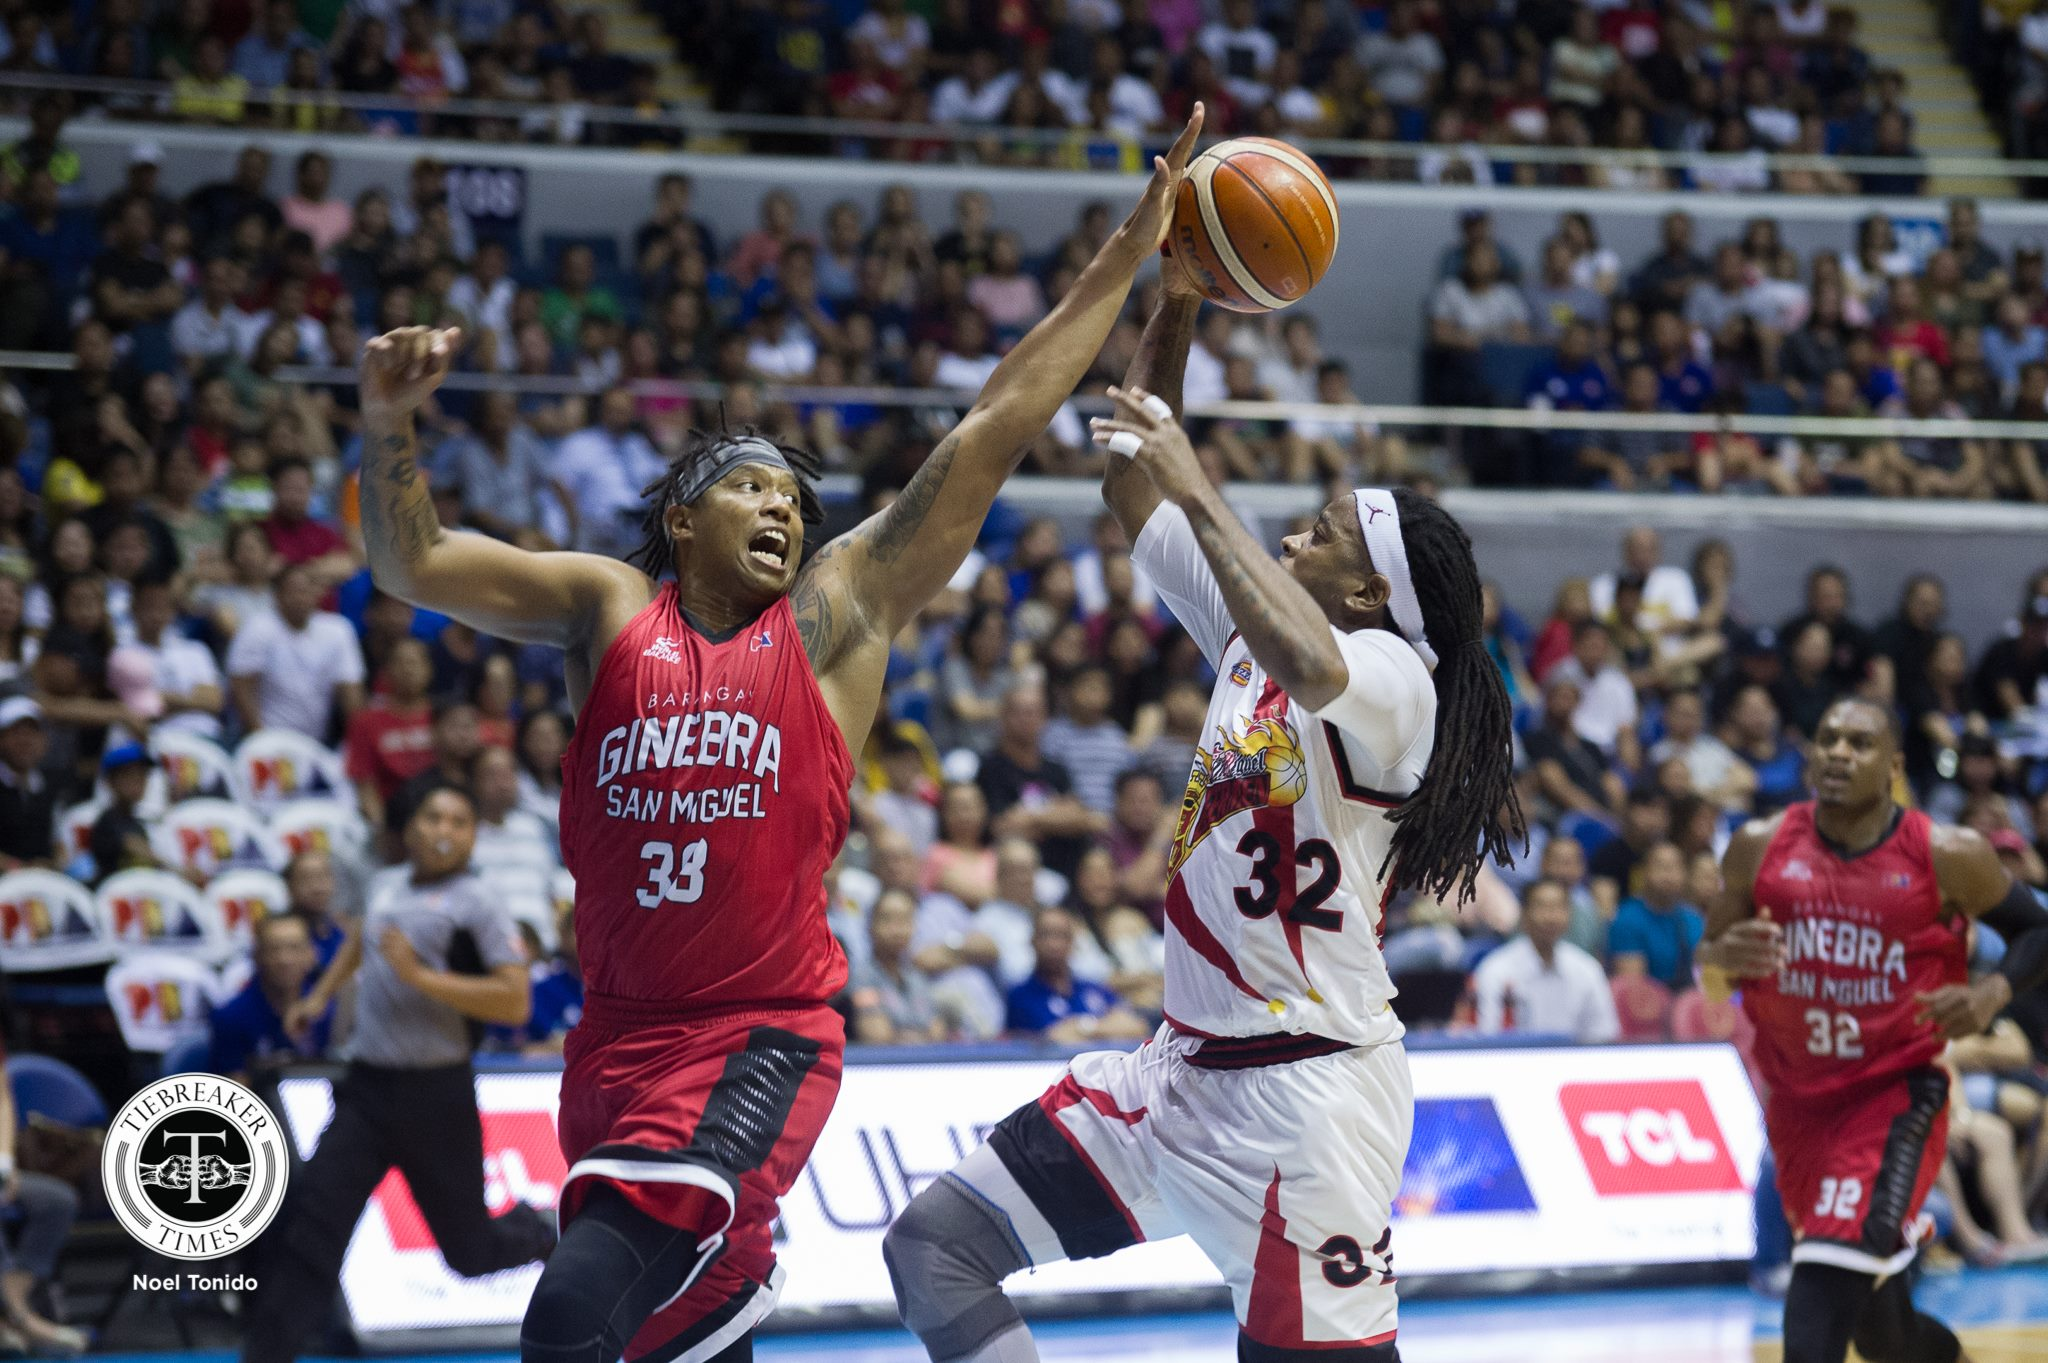 Tiebreaker Times Joe Devance continues to soldier on for Ginebra Basketball News PBA  PBA Season 43 Joe Devance Barangay Ginebra San Miguel 2018 PBA Governors Cup